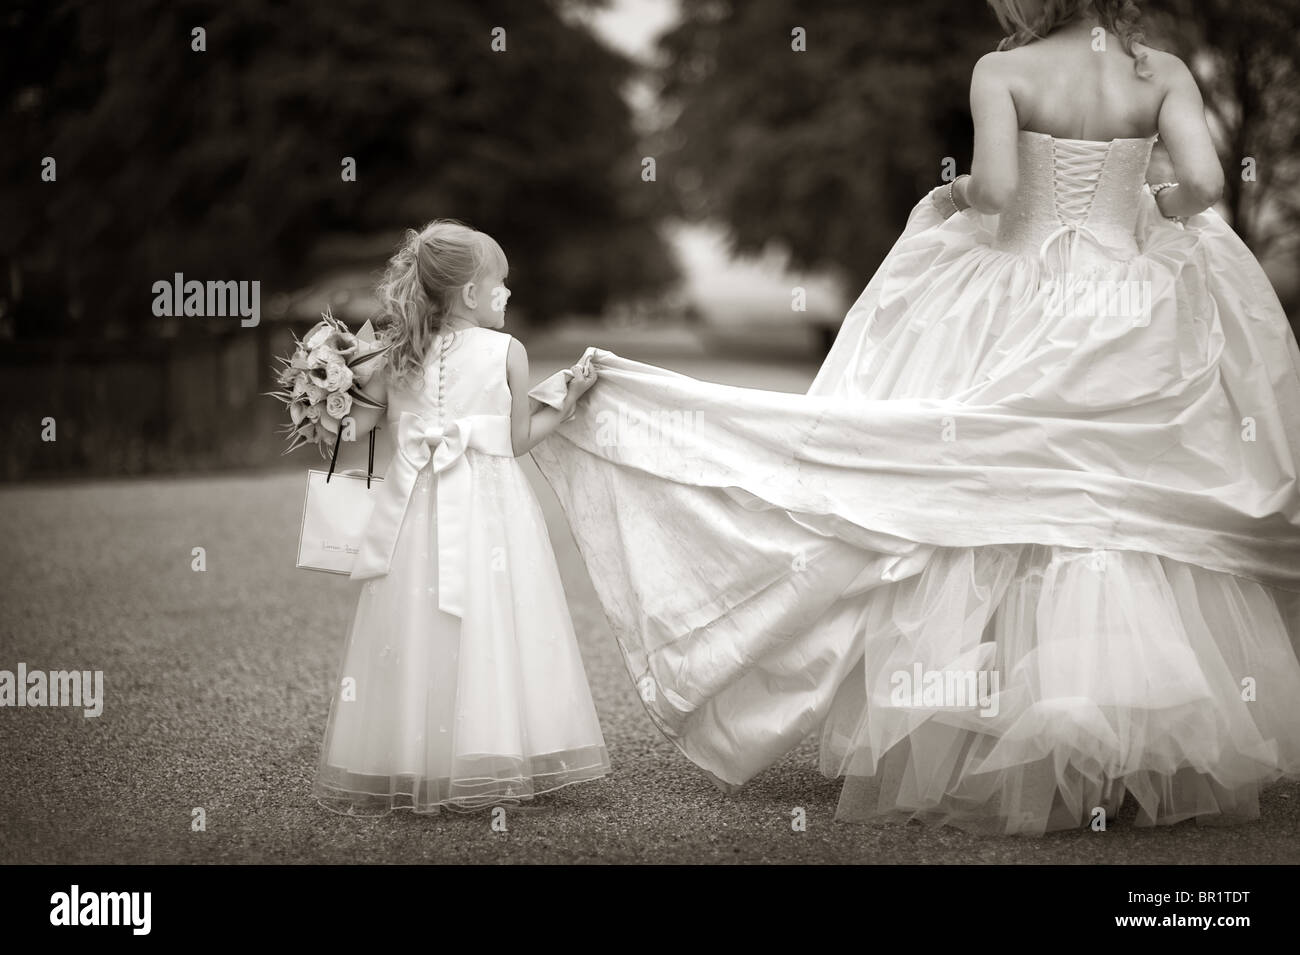 Bridesmaid Or Flower Girl Holding The Train Of A Brides